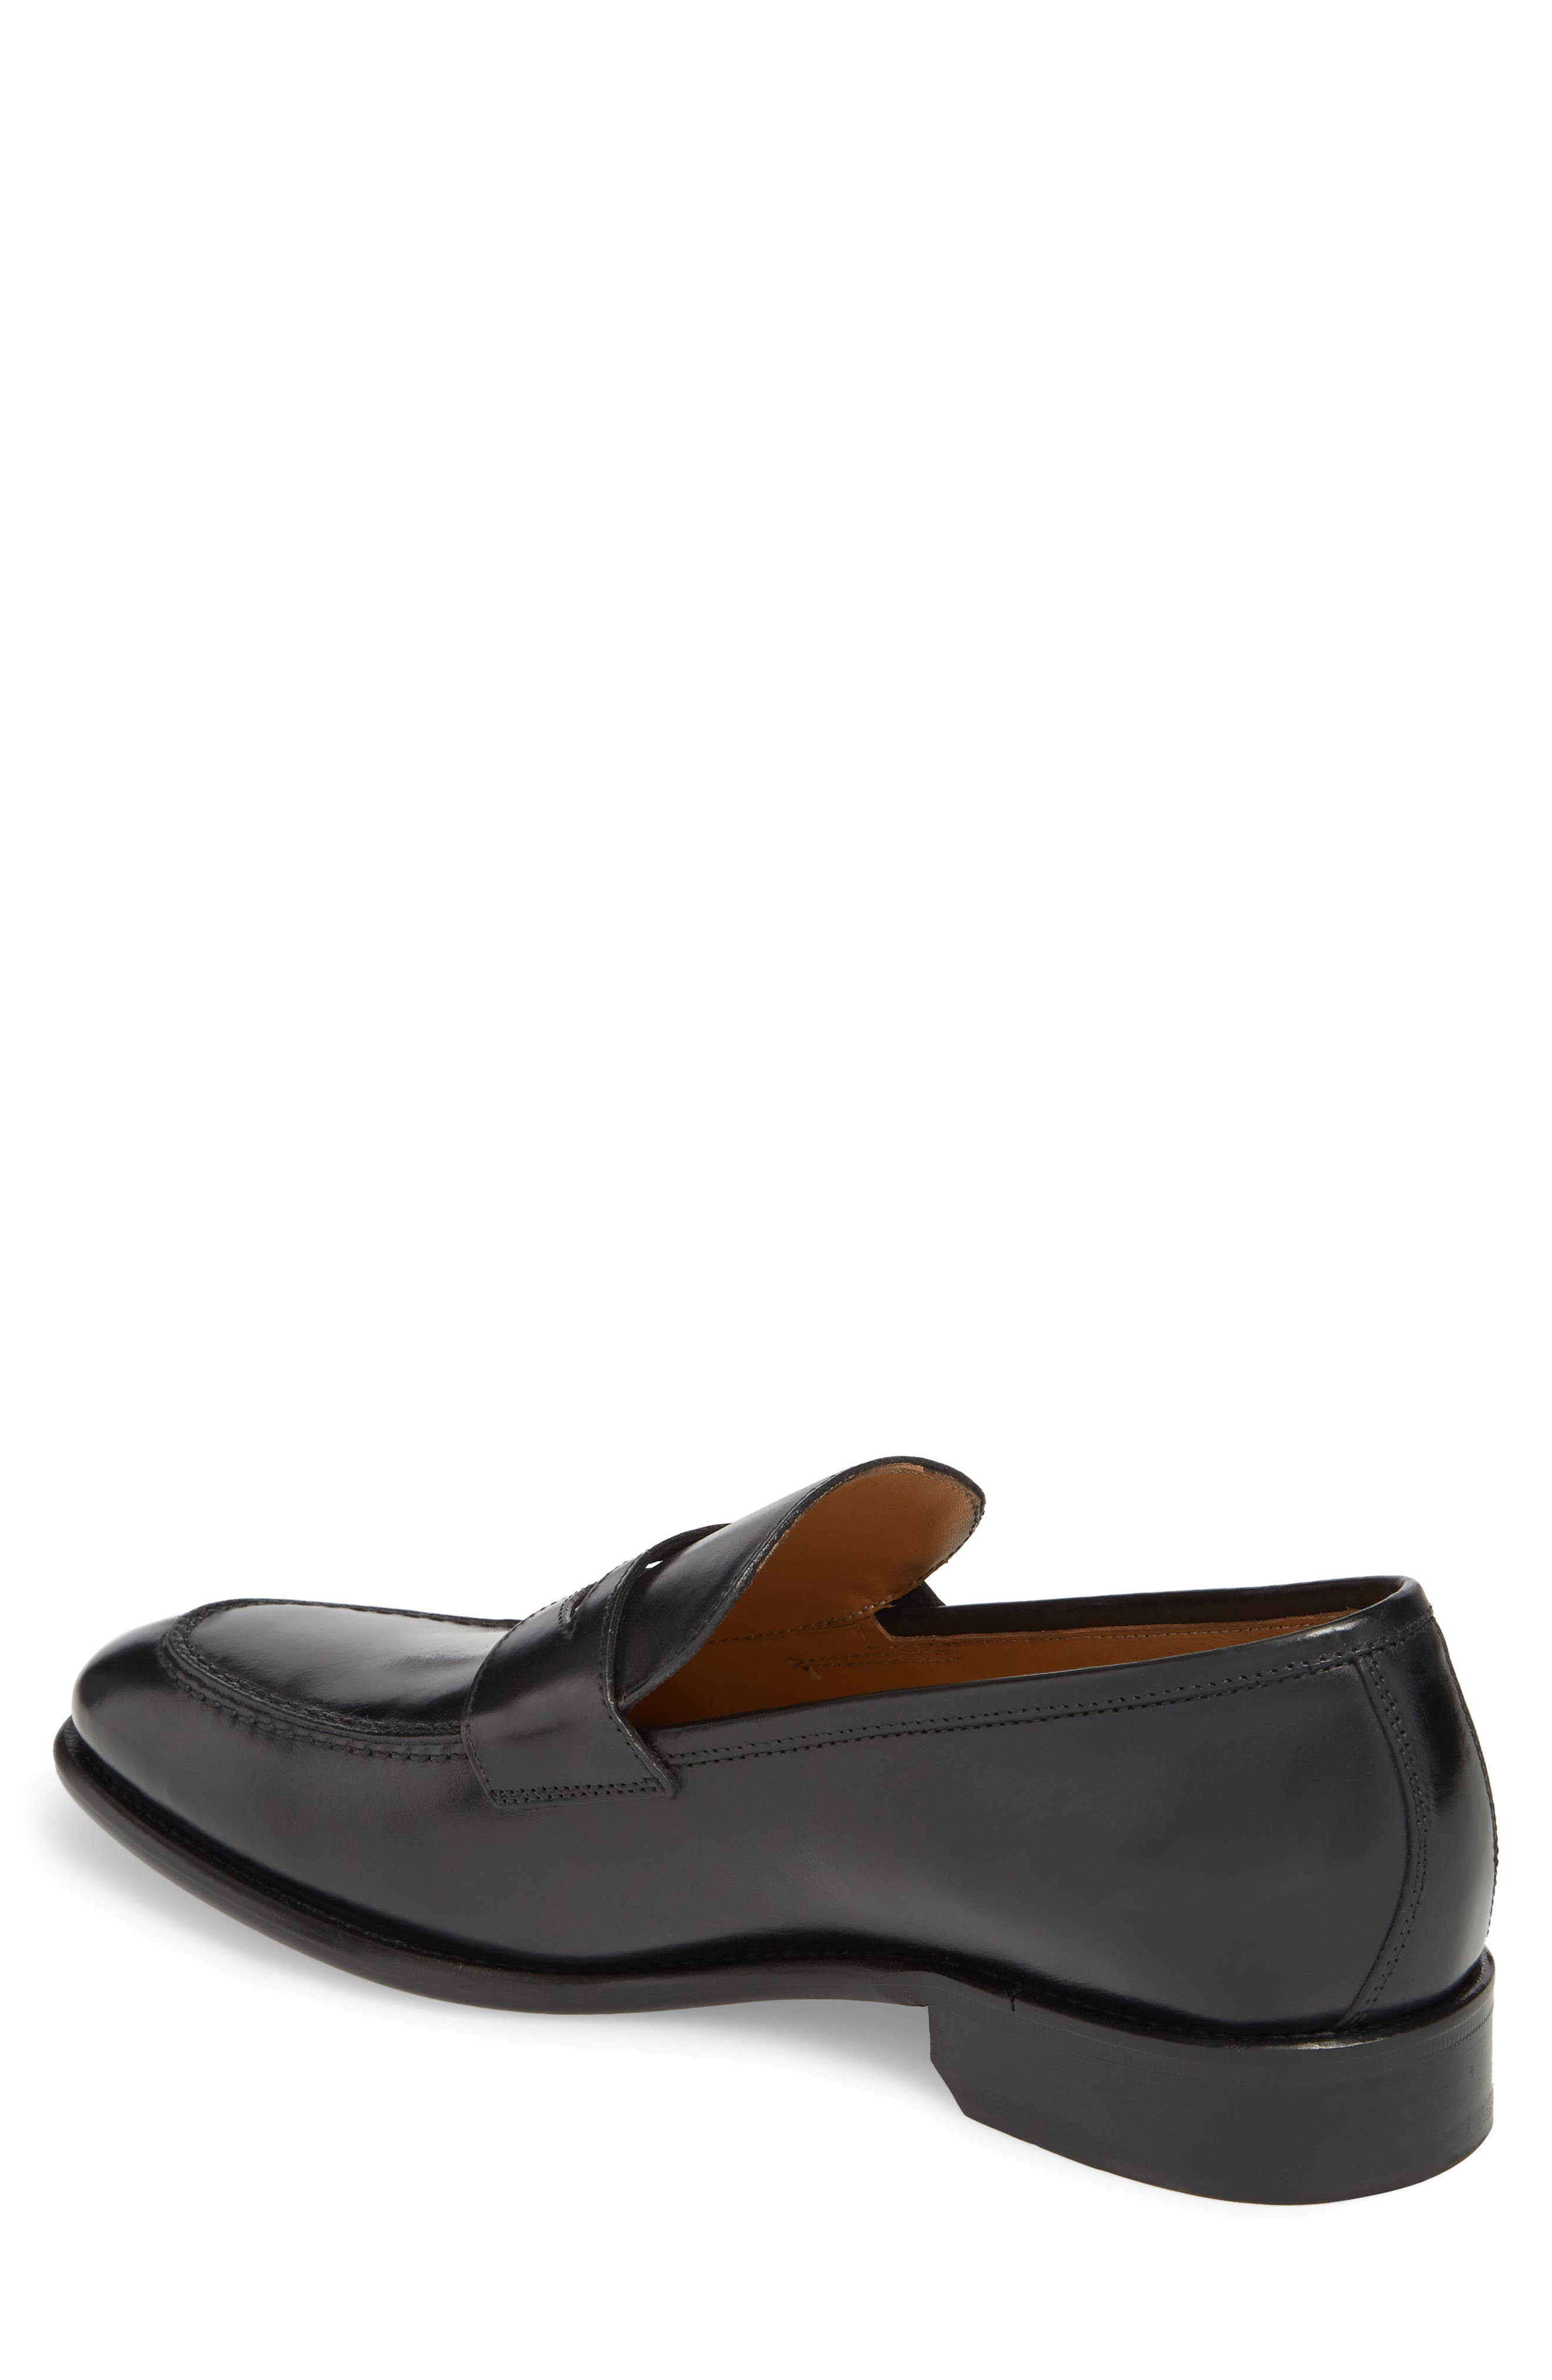 Imperial Venucci Apron Toe Penny Loafer,                             Alternate thumbnail 2, color,                             BLACK LEATHER